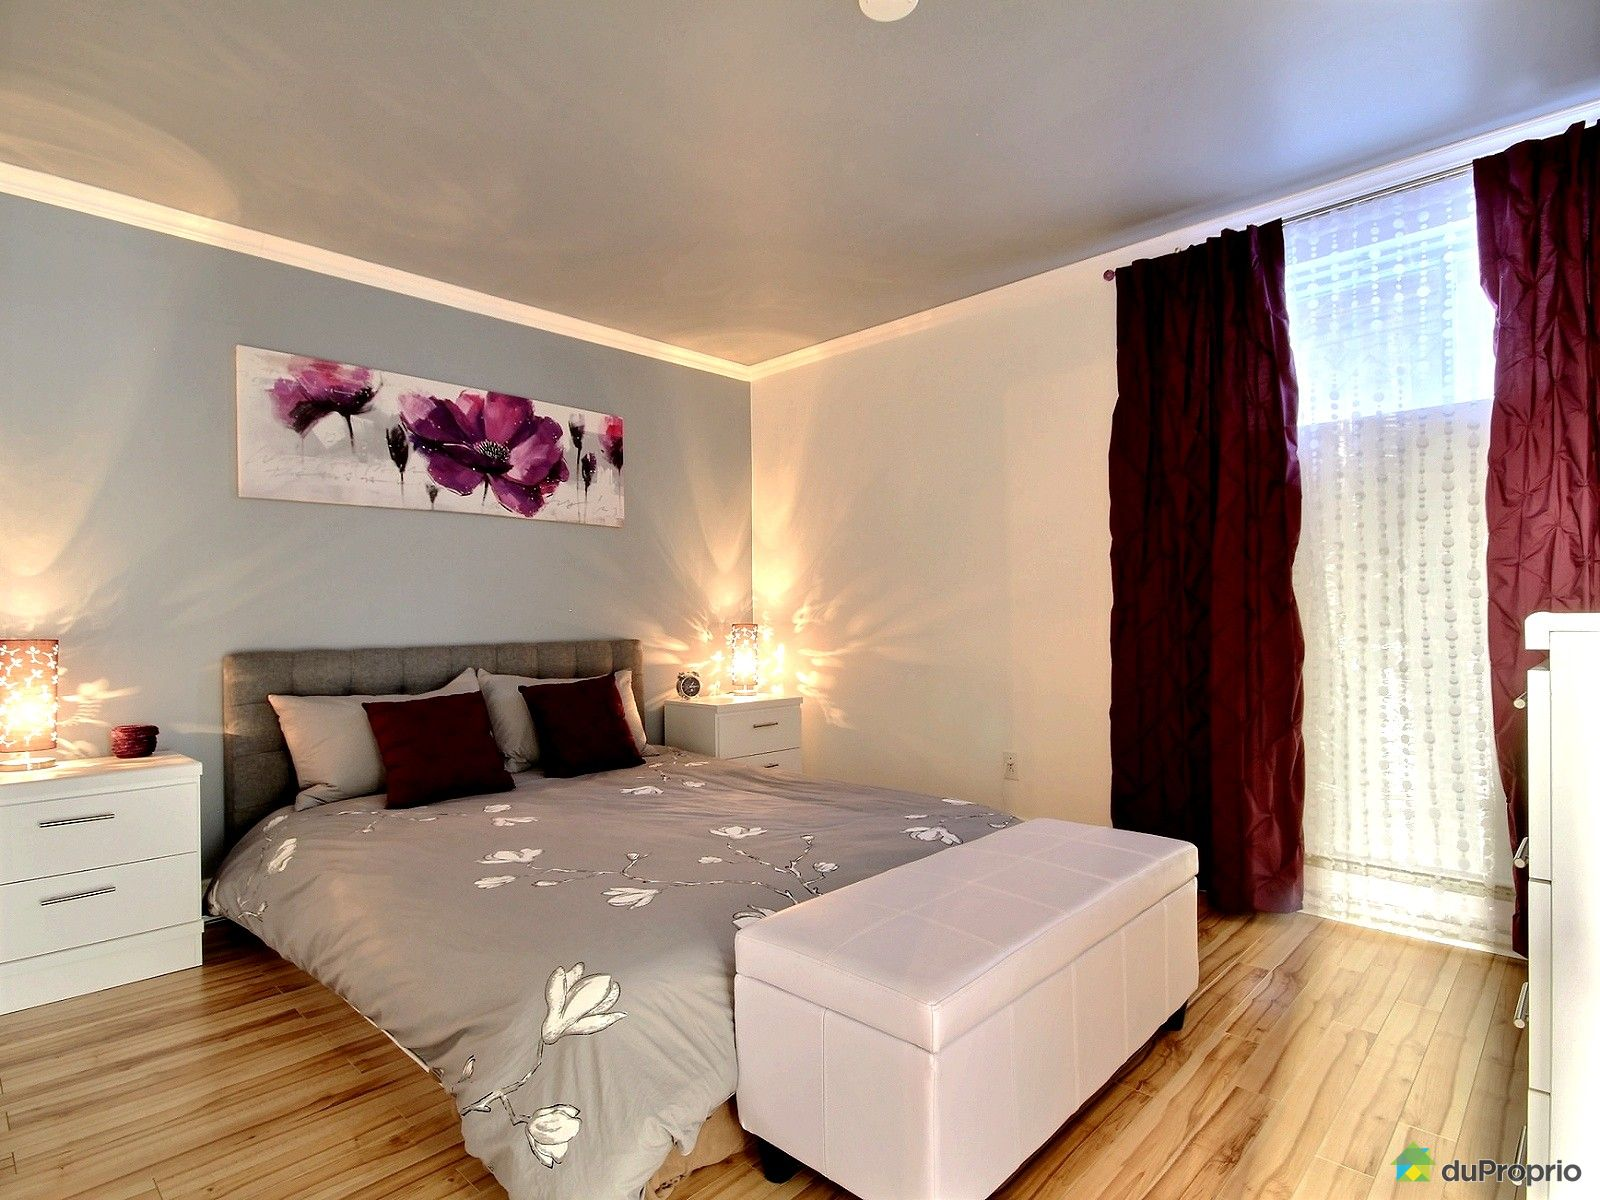 House for sale in mirabel 14845 rue du froment for 3 bedroom house with basement for sale